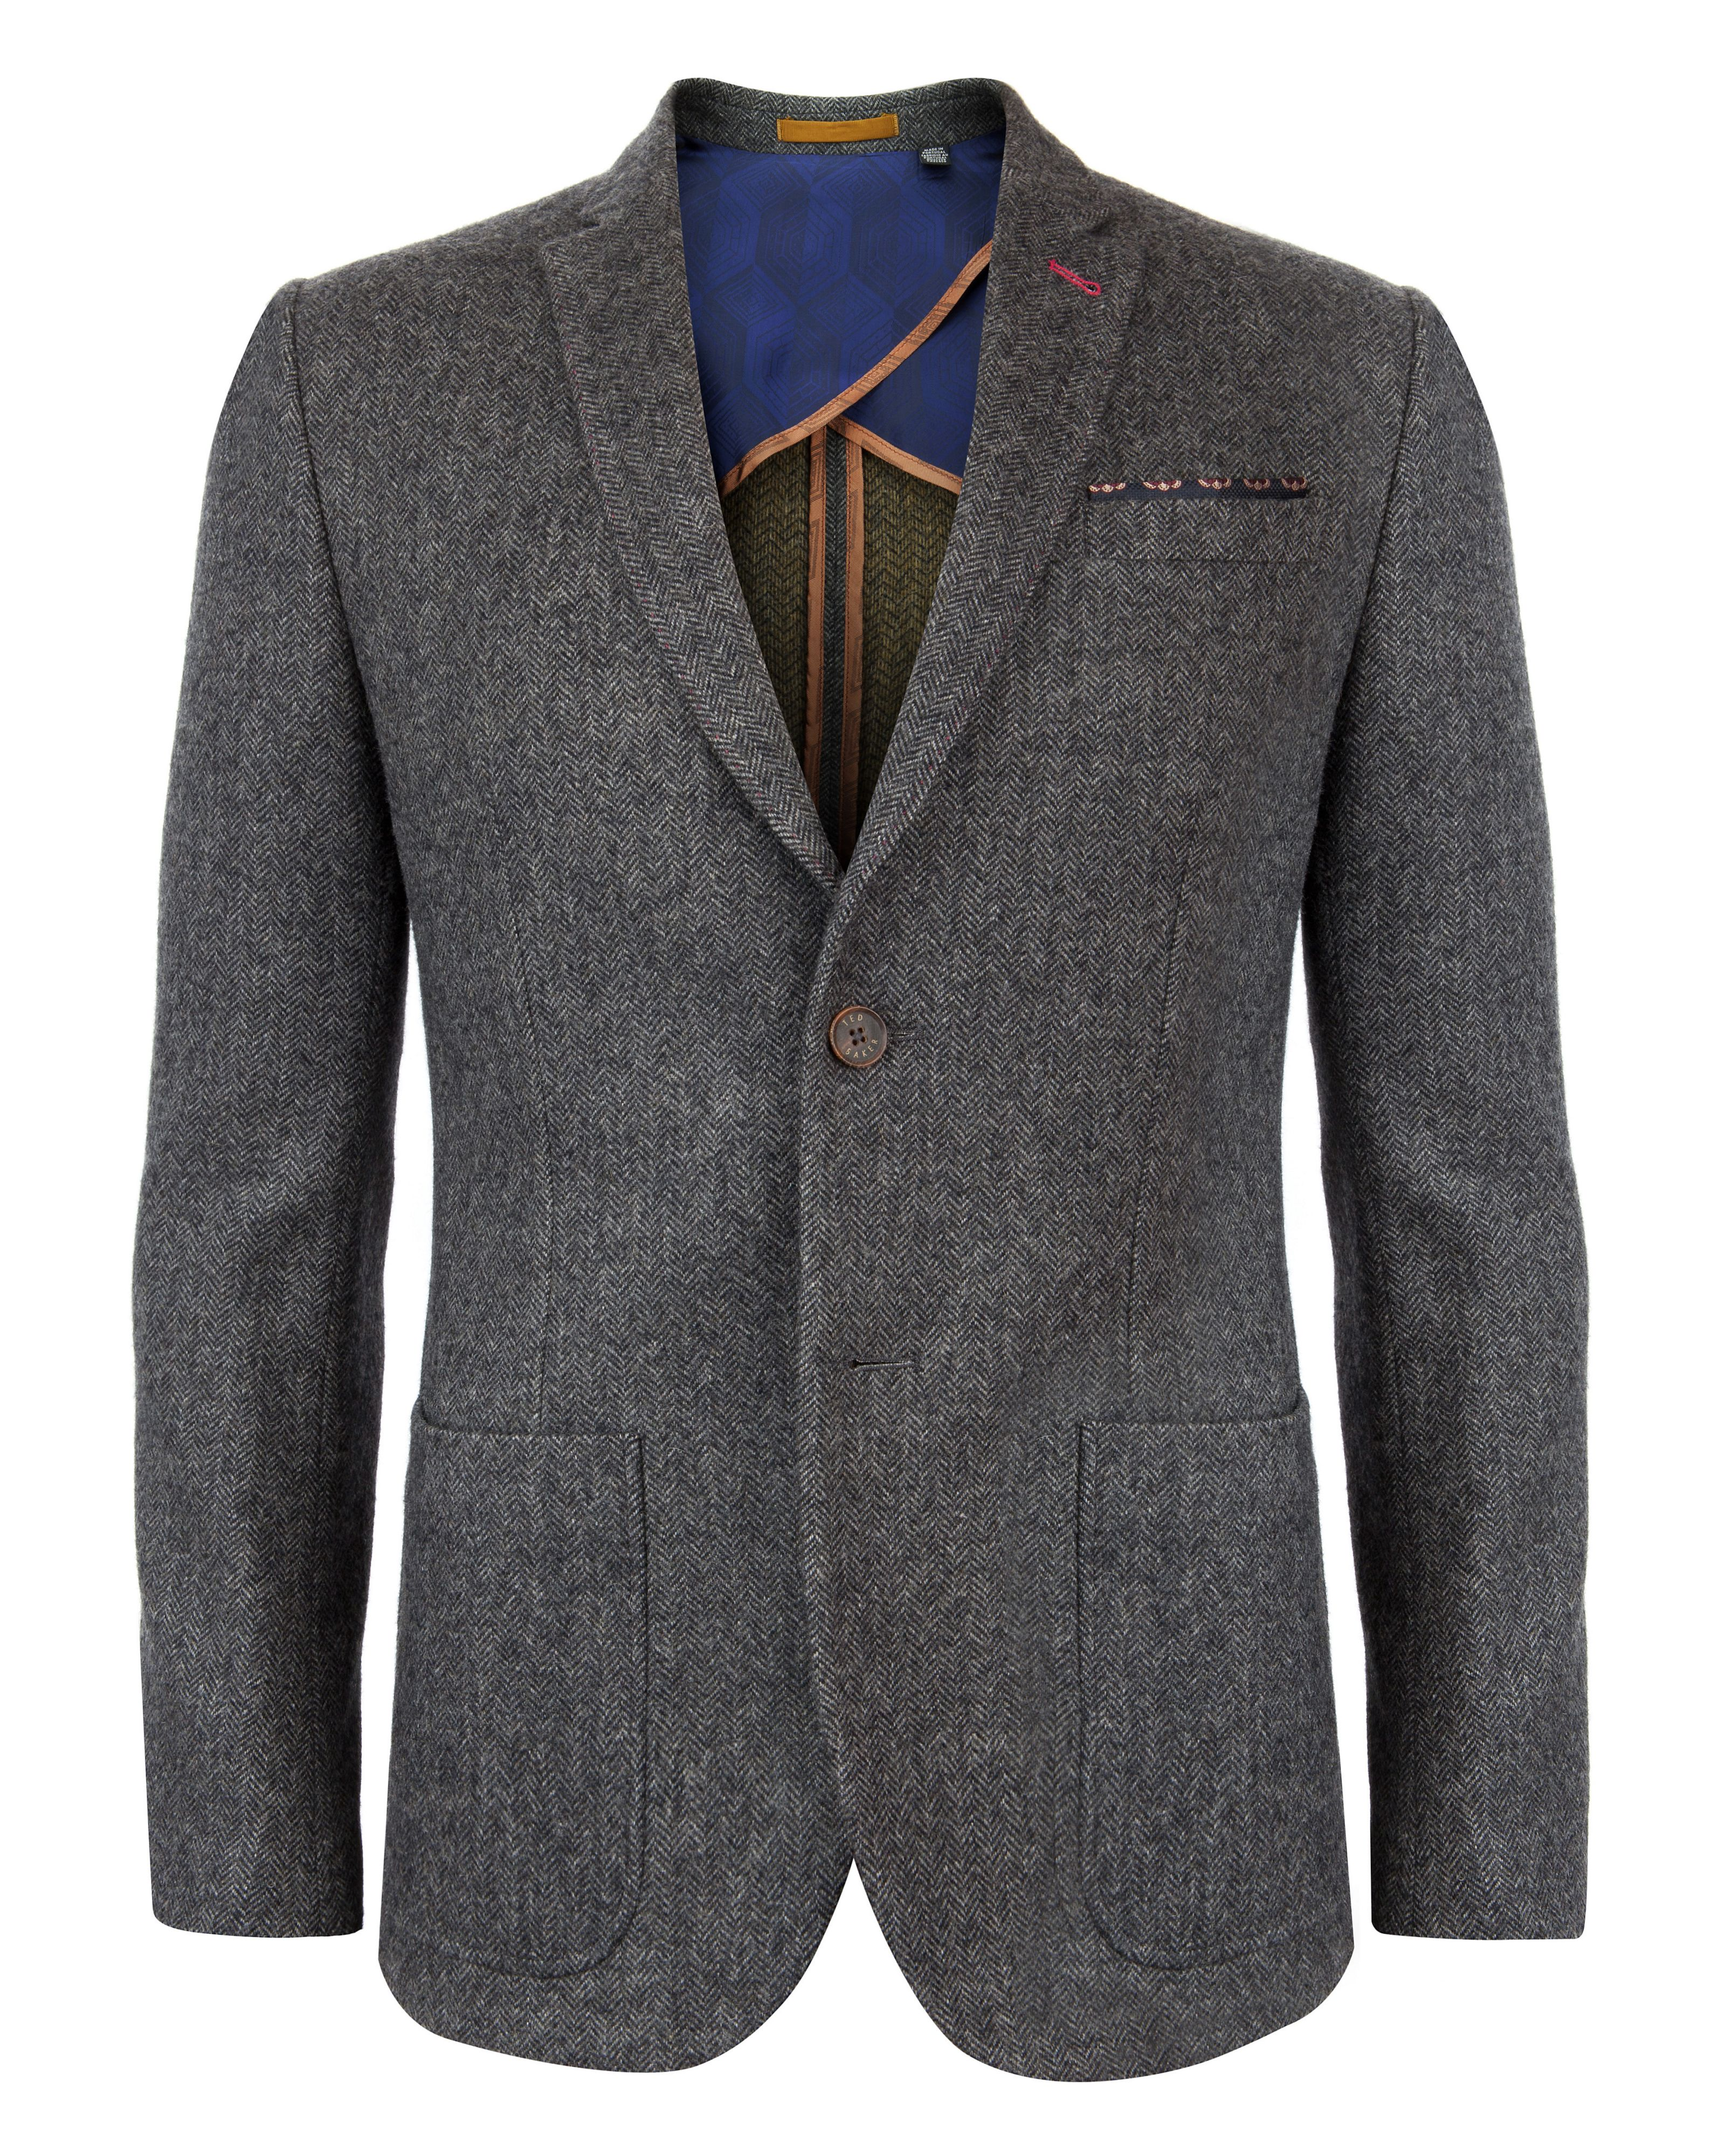 Elend patch pocket blazer